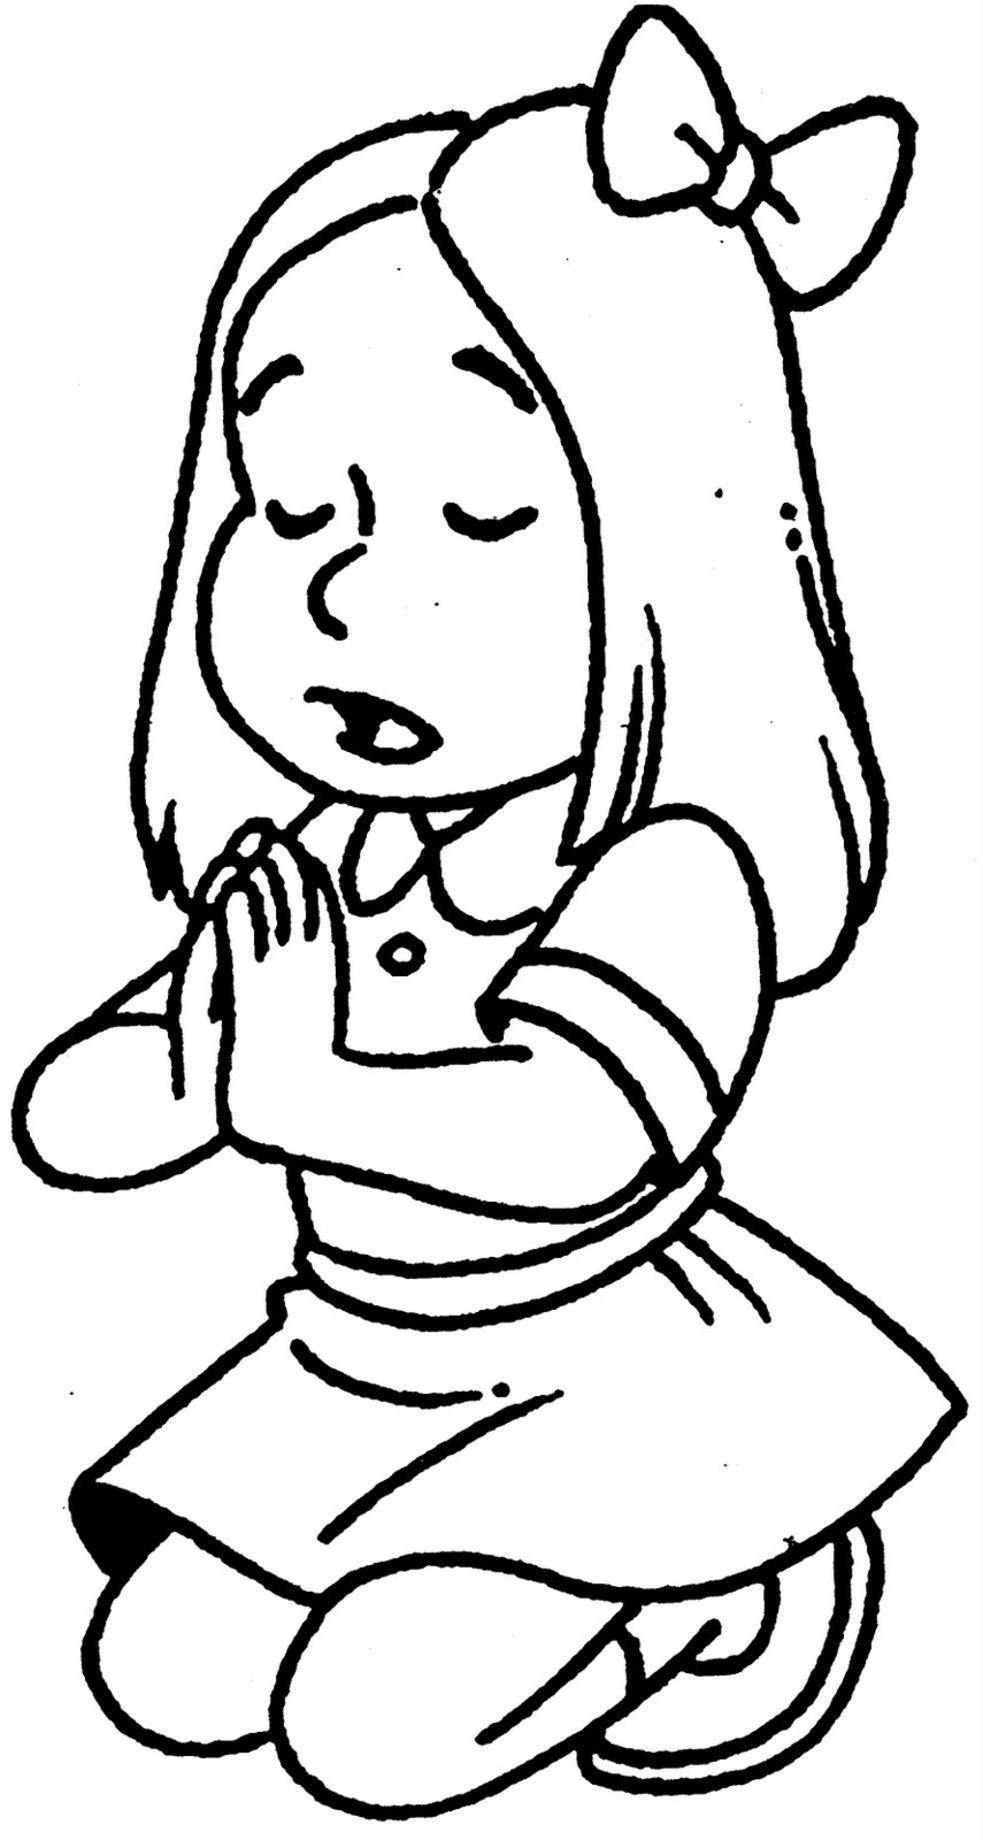 Little Girl Praying Drawing at GetDrawings.com | Free for personal ...